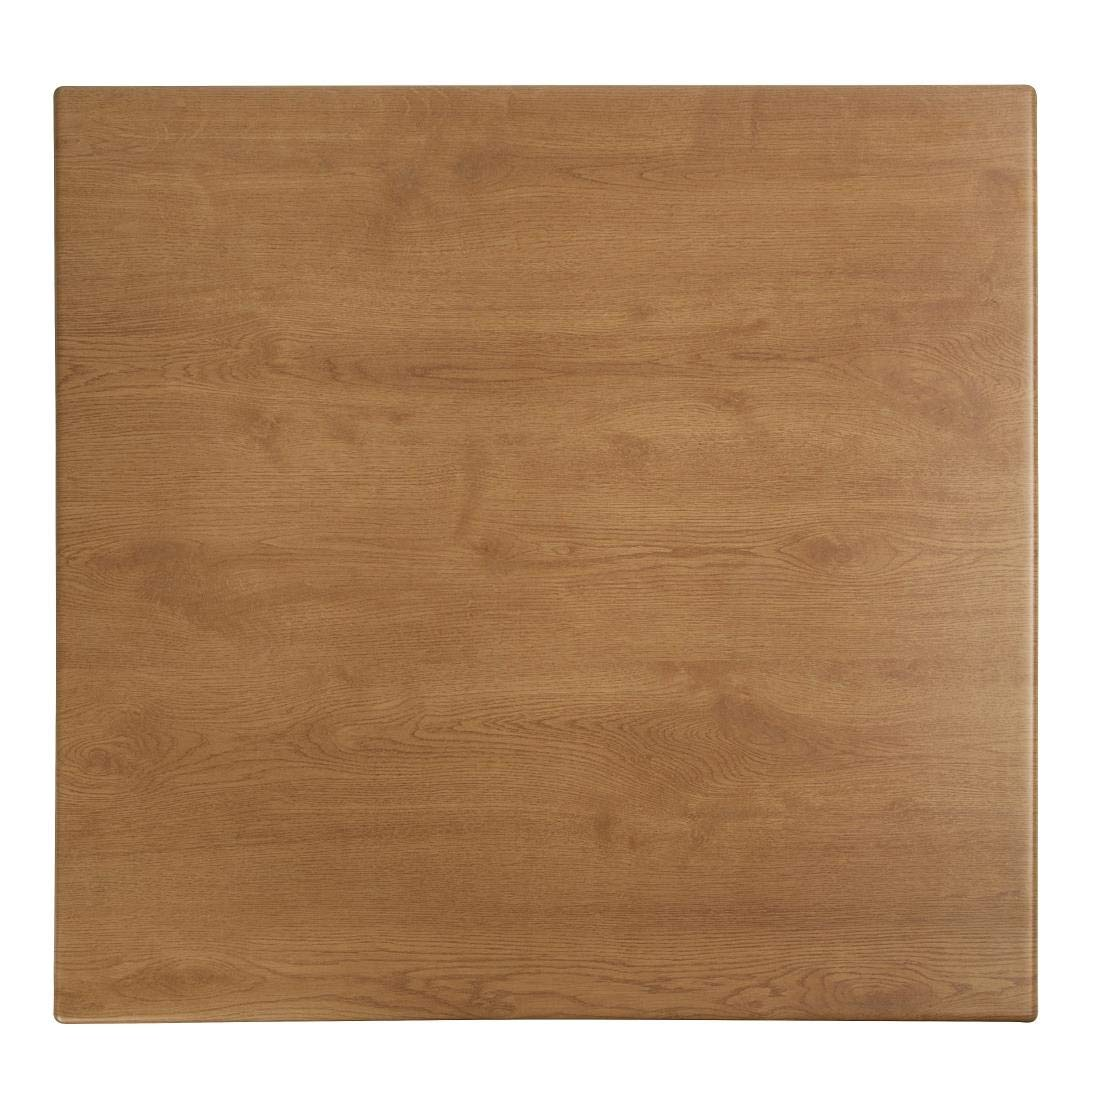 Werzalit plus CE159 Square Table Top, 600 mm, Oak